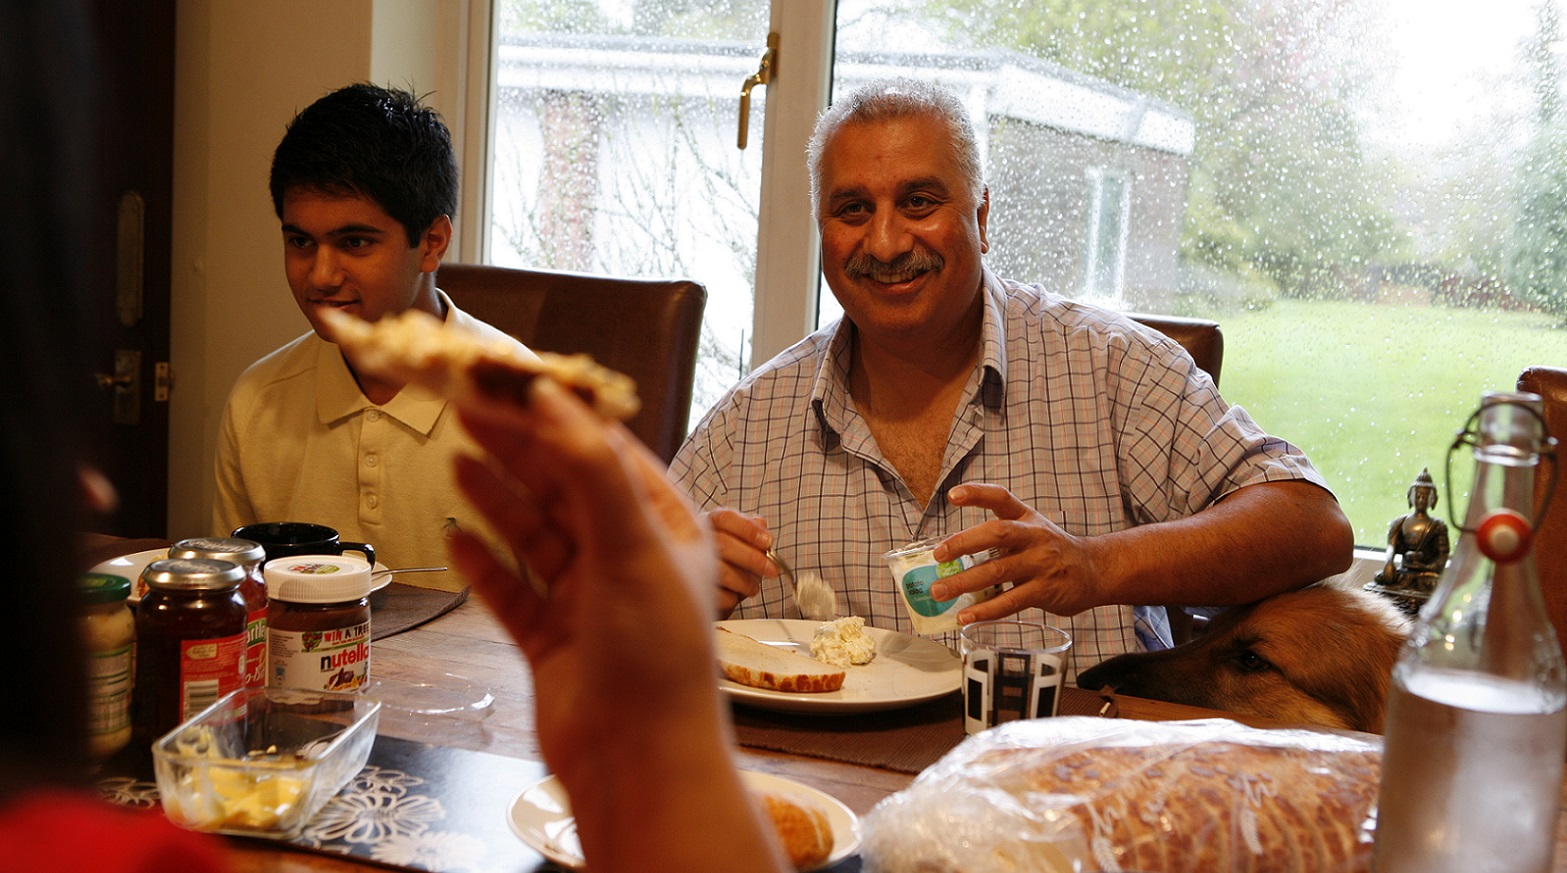 Kidney cancer patient Nilesh at dinner